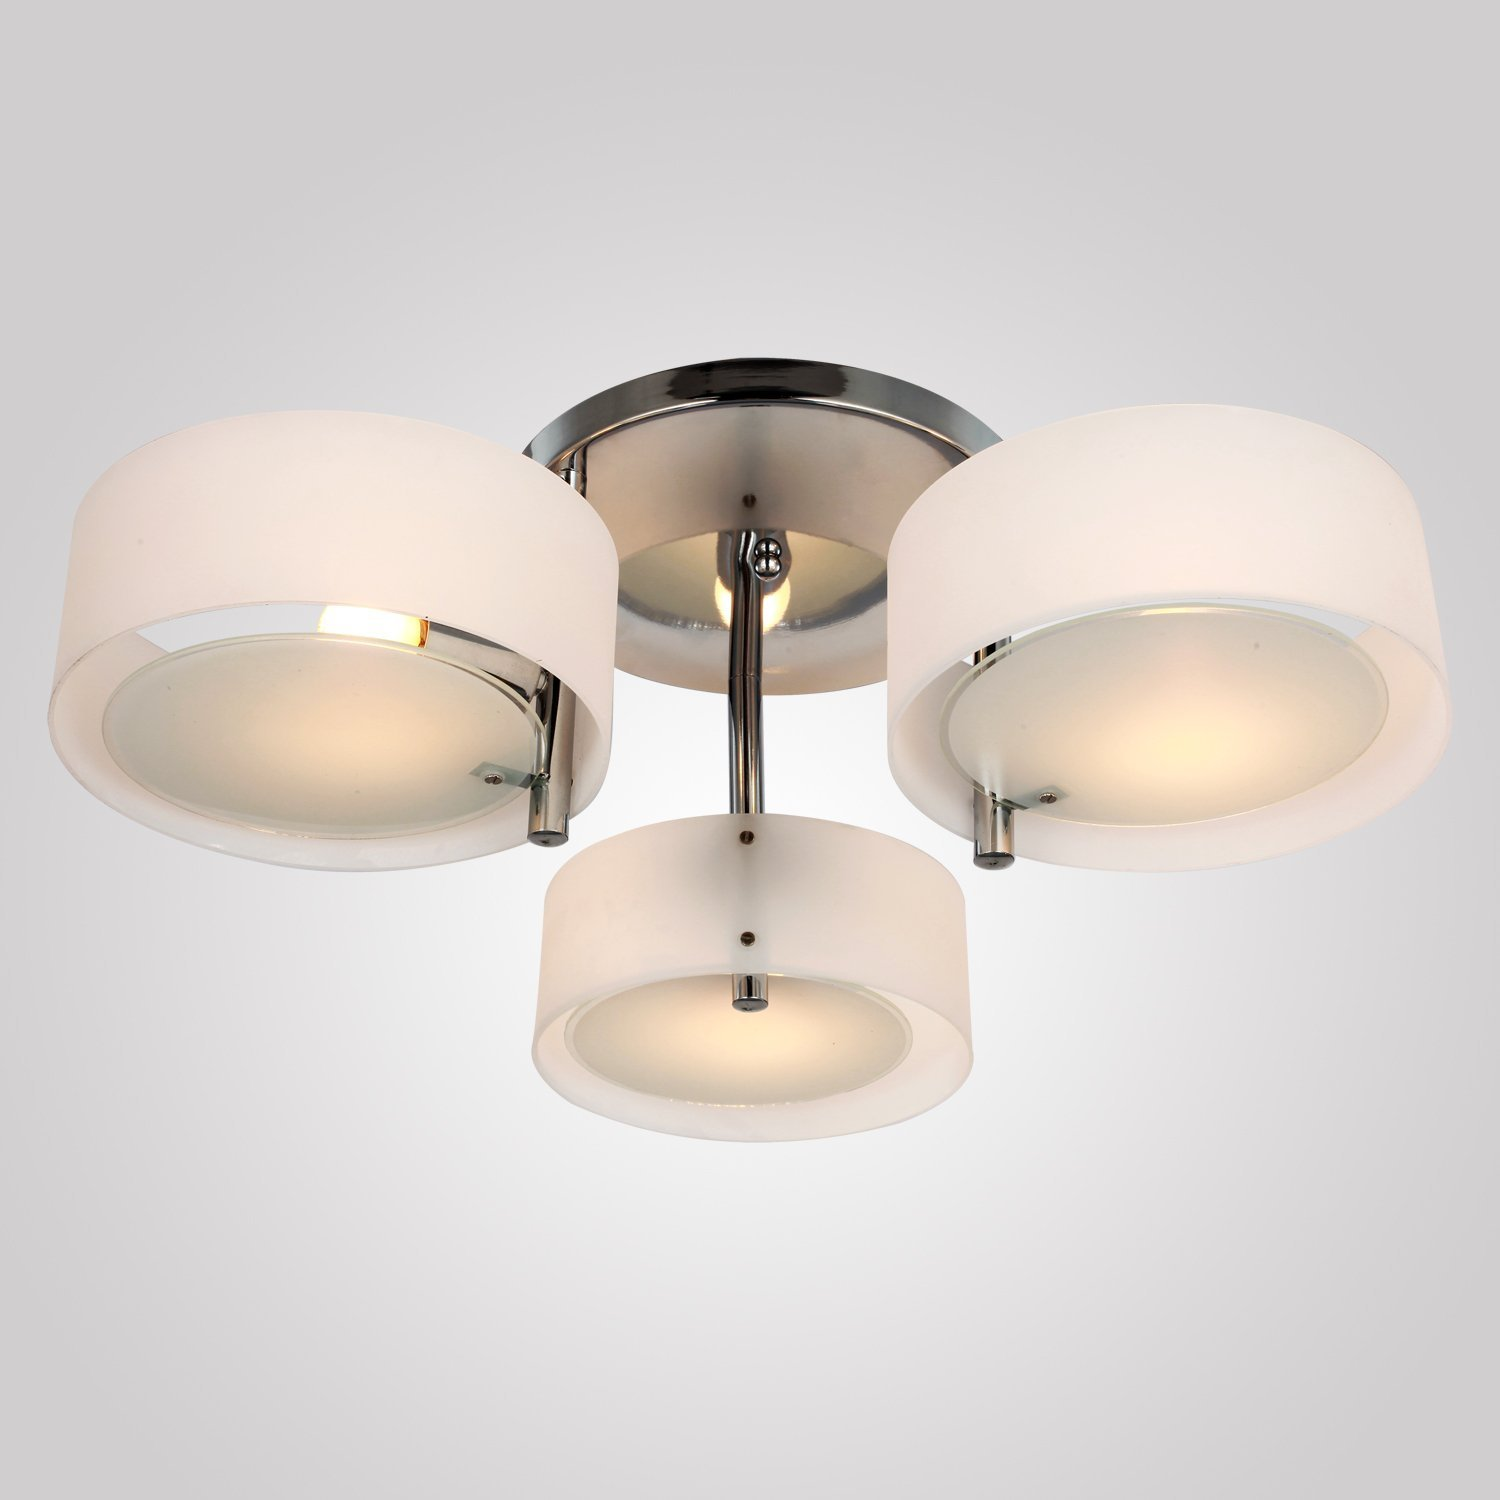 fixtures light lighting larger fixture two ring lights led ceiling amax flush view mount oval